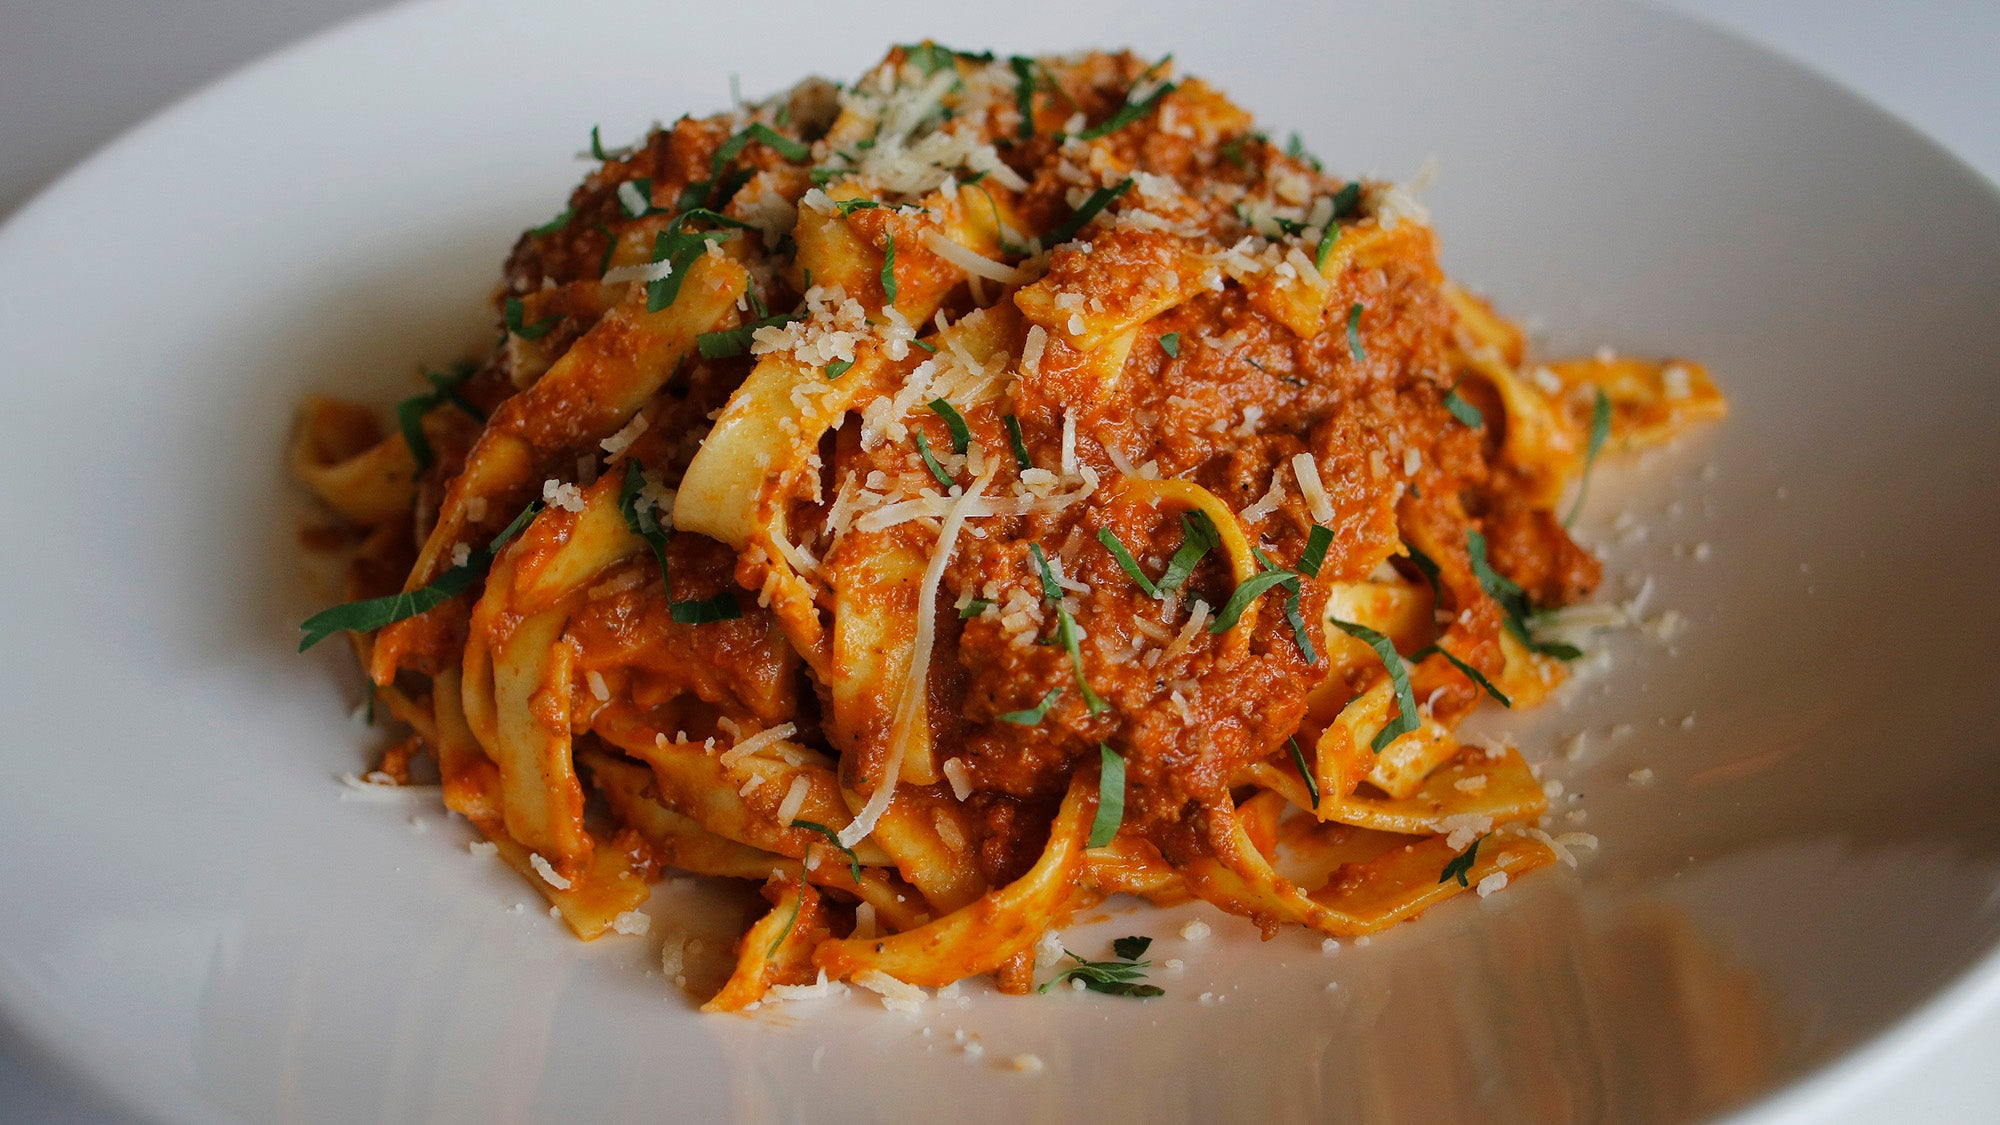 Tagliatelle with bolognese at Stella